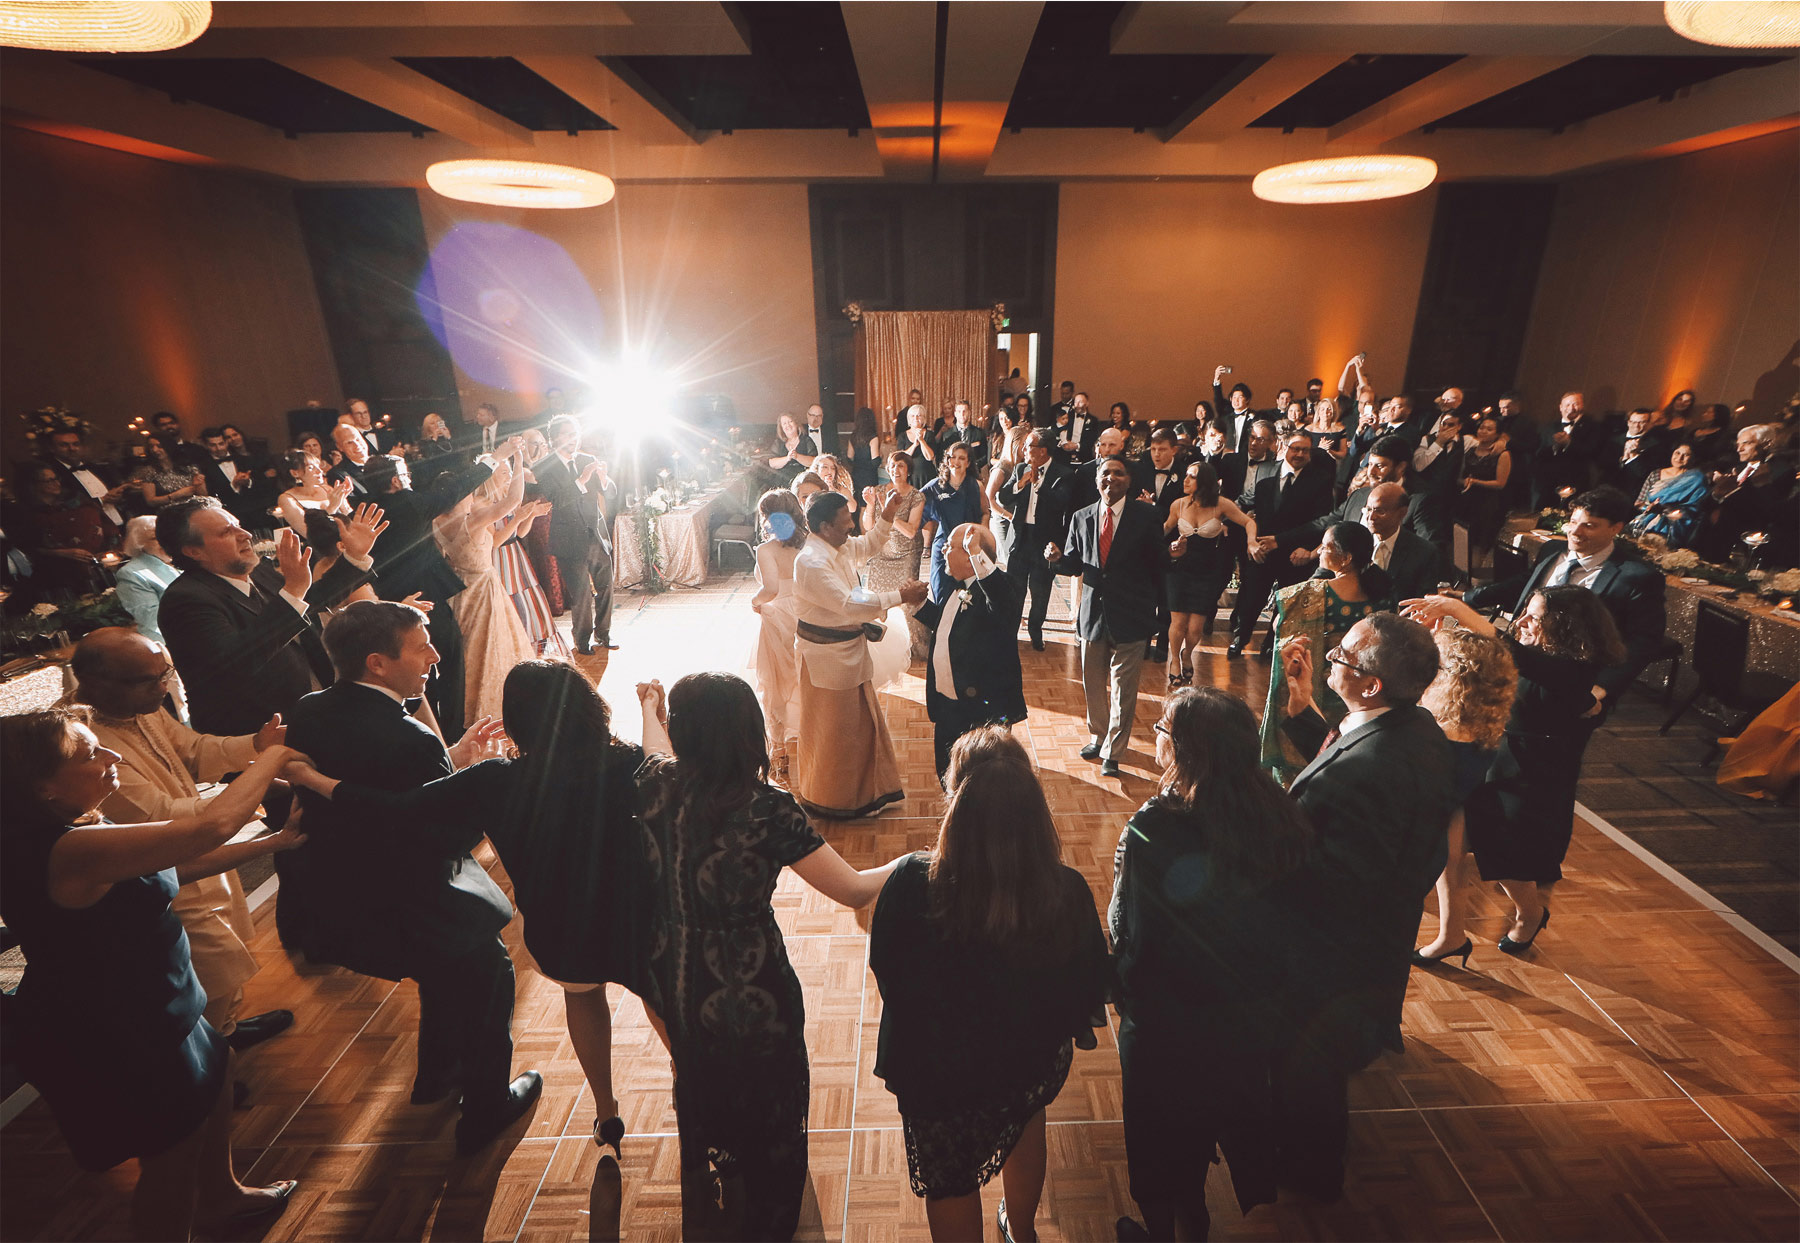 28-Minneapolis-Minnesota-Wedding-Photographer-by-Andrew-Vick-Photography-JW-Marriott-Mall-of-America-MOA-Spring-Guest-Indian-Hora-Dance-Vintage-Rachel-and-Venu.jpg